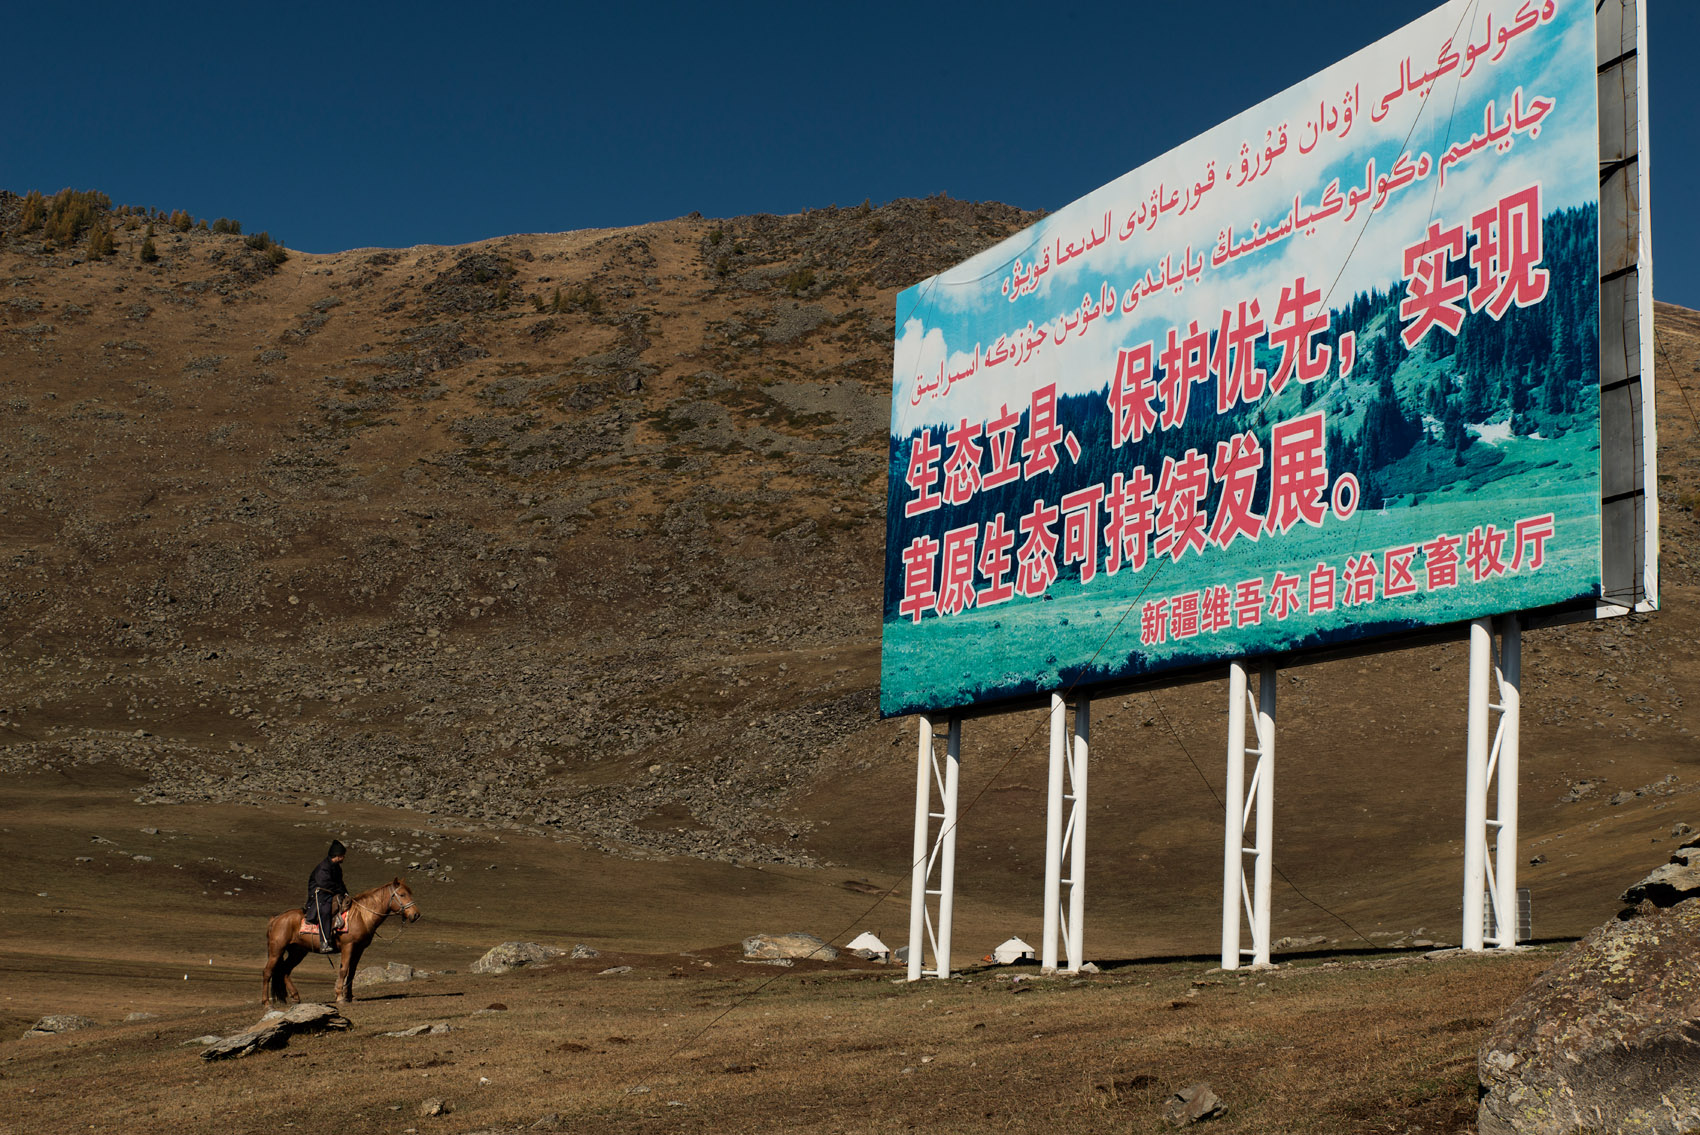 """A Kazakh nomad on his horse, in the grasslands of the Altai range, facing a propaganda billboard saying : """"The foundation of this county is in its environment; environmental protection is the priority; must realise sustainable development of the grassland"""".  In this region, many nomads have left for neighbouring Kazakhstan, rather than be forced into sedentary farming for which they have little knowledge."""